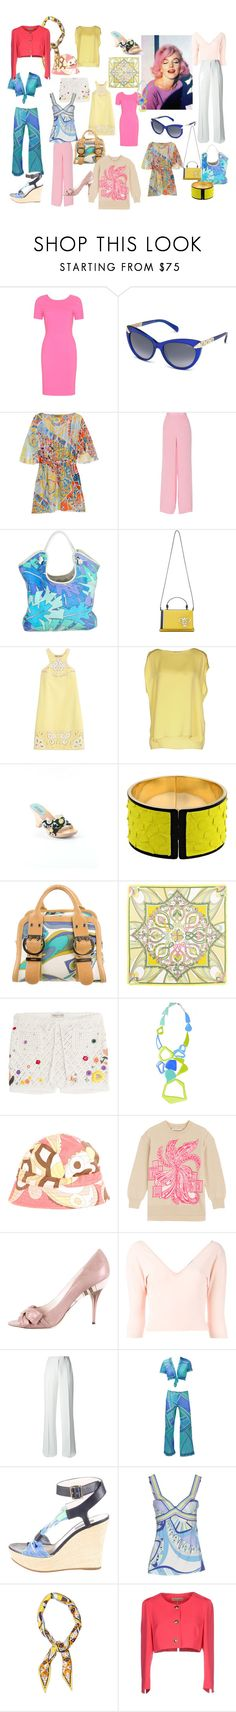 Marilyn Monroe by jenny-ragnwaldh on Polyvore featuring Emilio Pucci, women's clothing, women's fashion, women, female, woman, misses and juniors